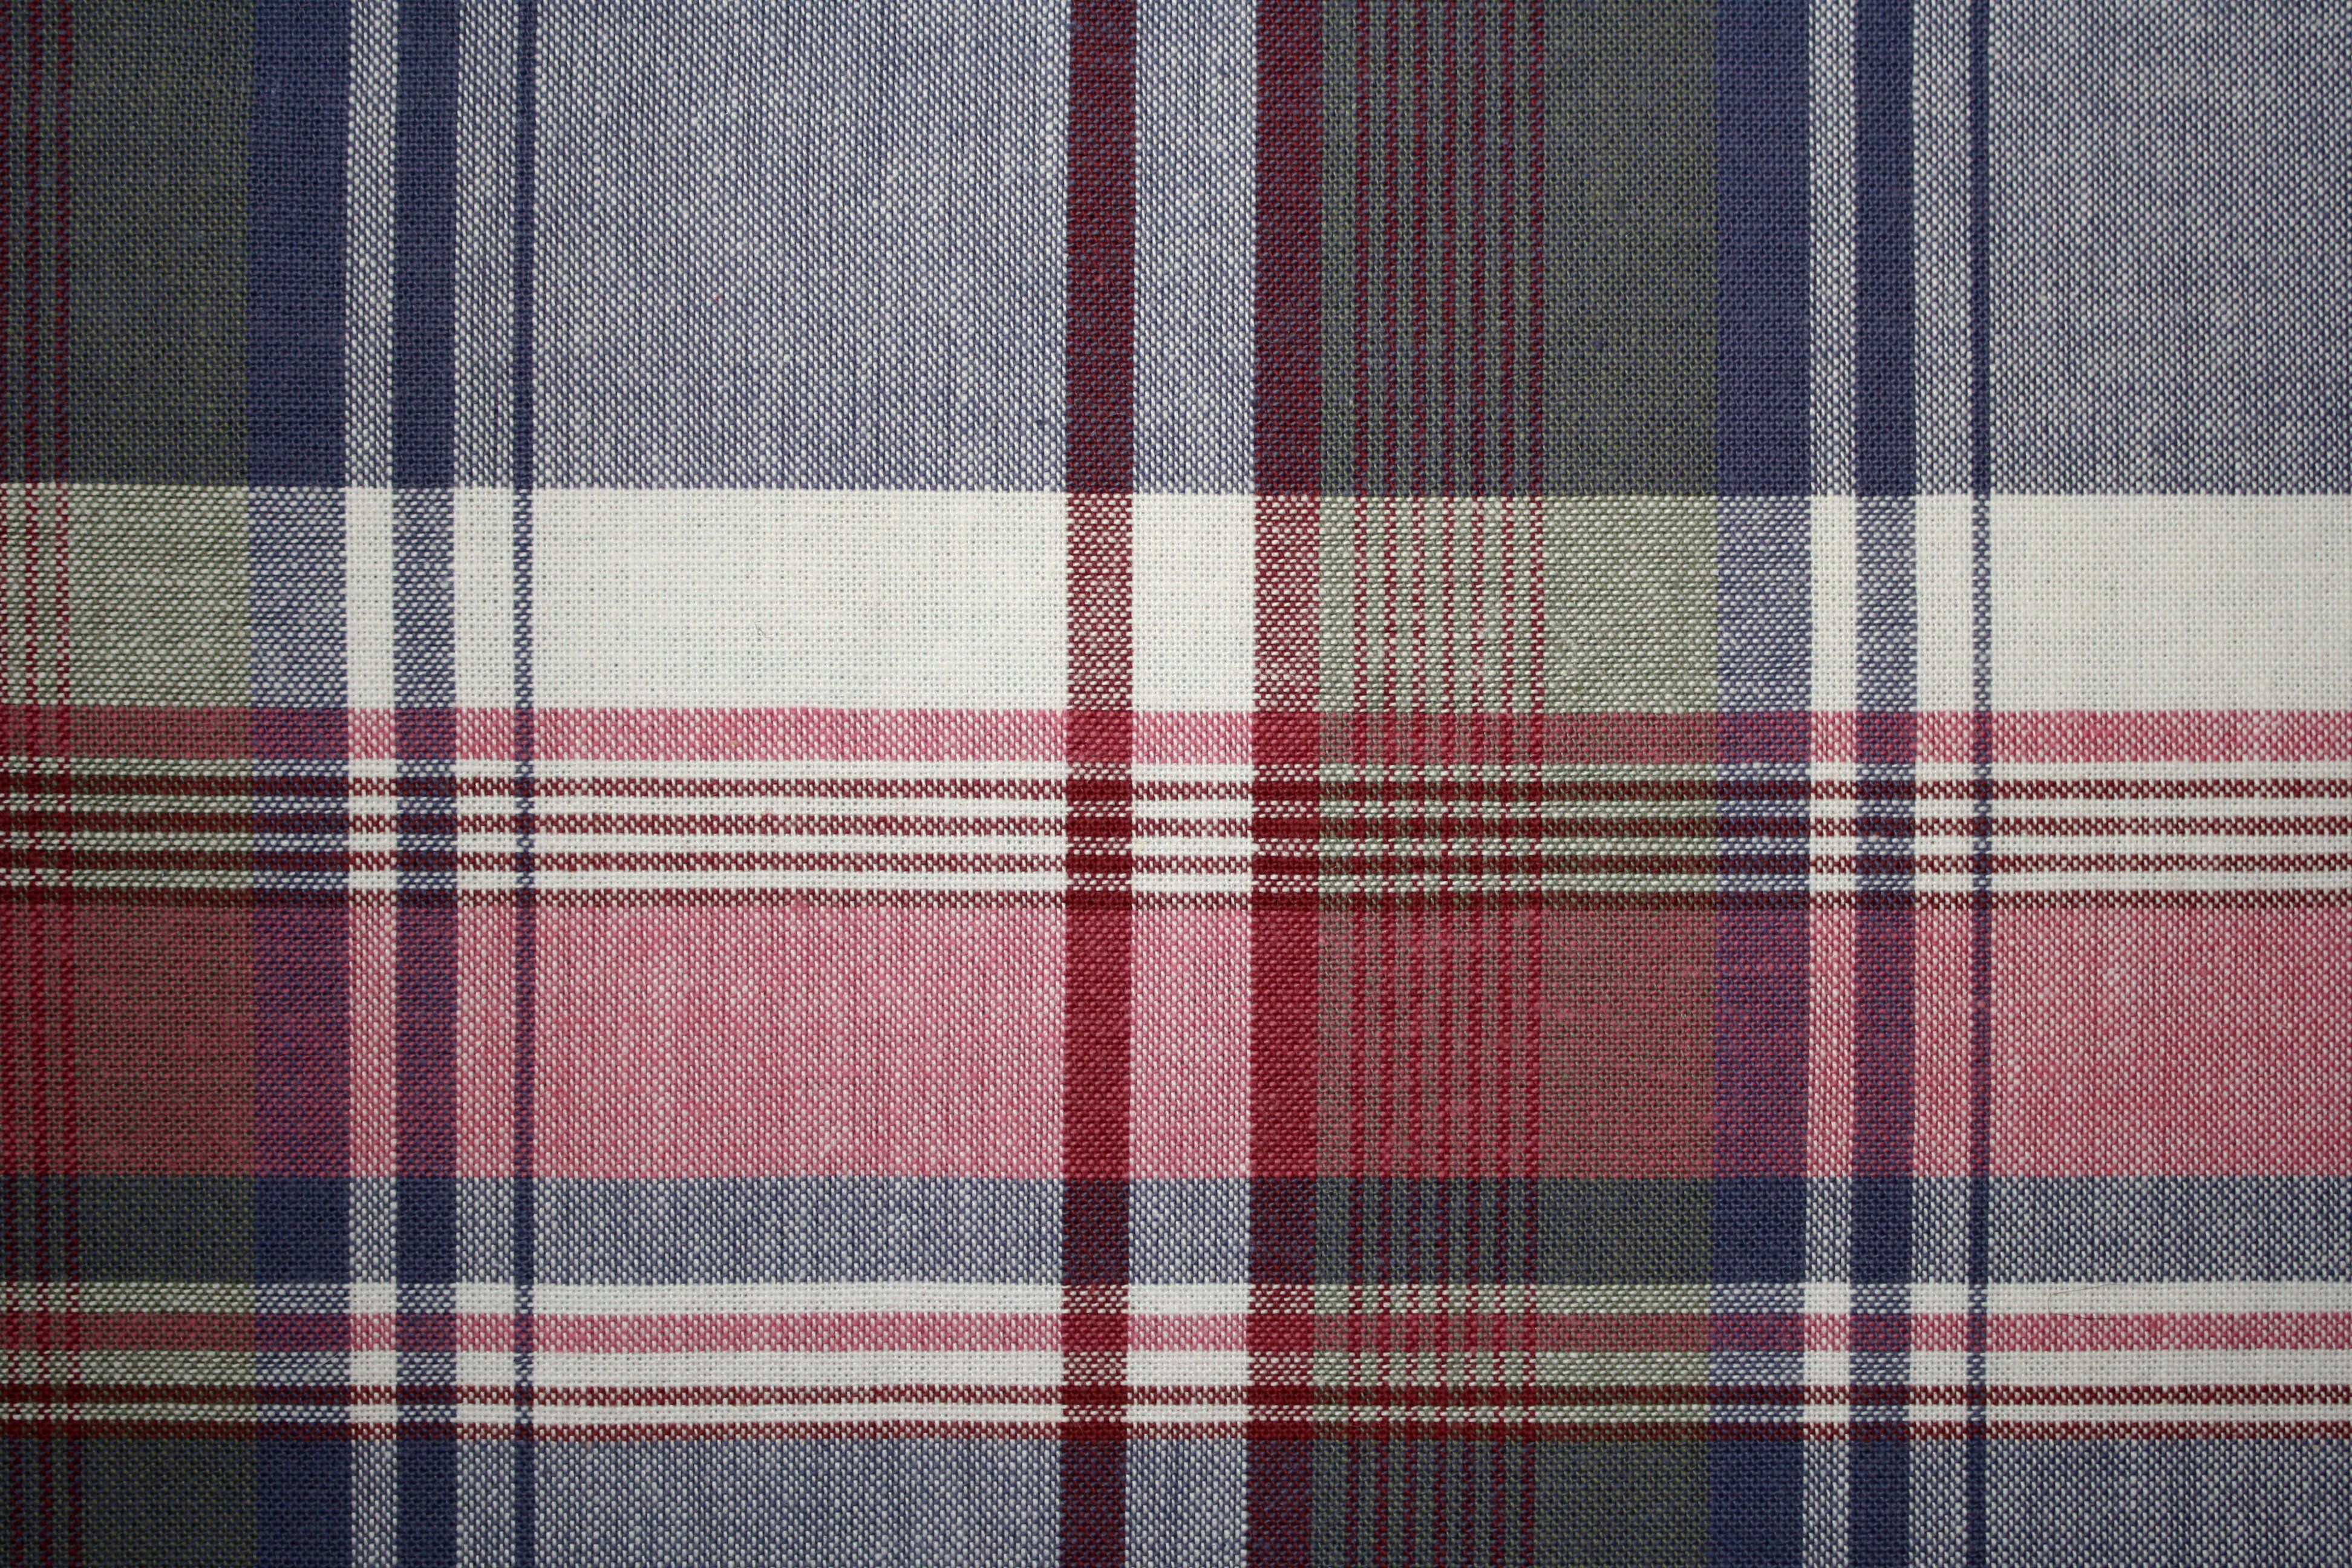 Plaid Fabric Texture – Red and Blue with Green | Pretty amaze ...